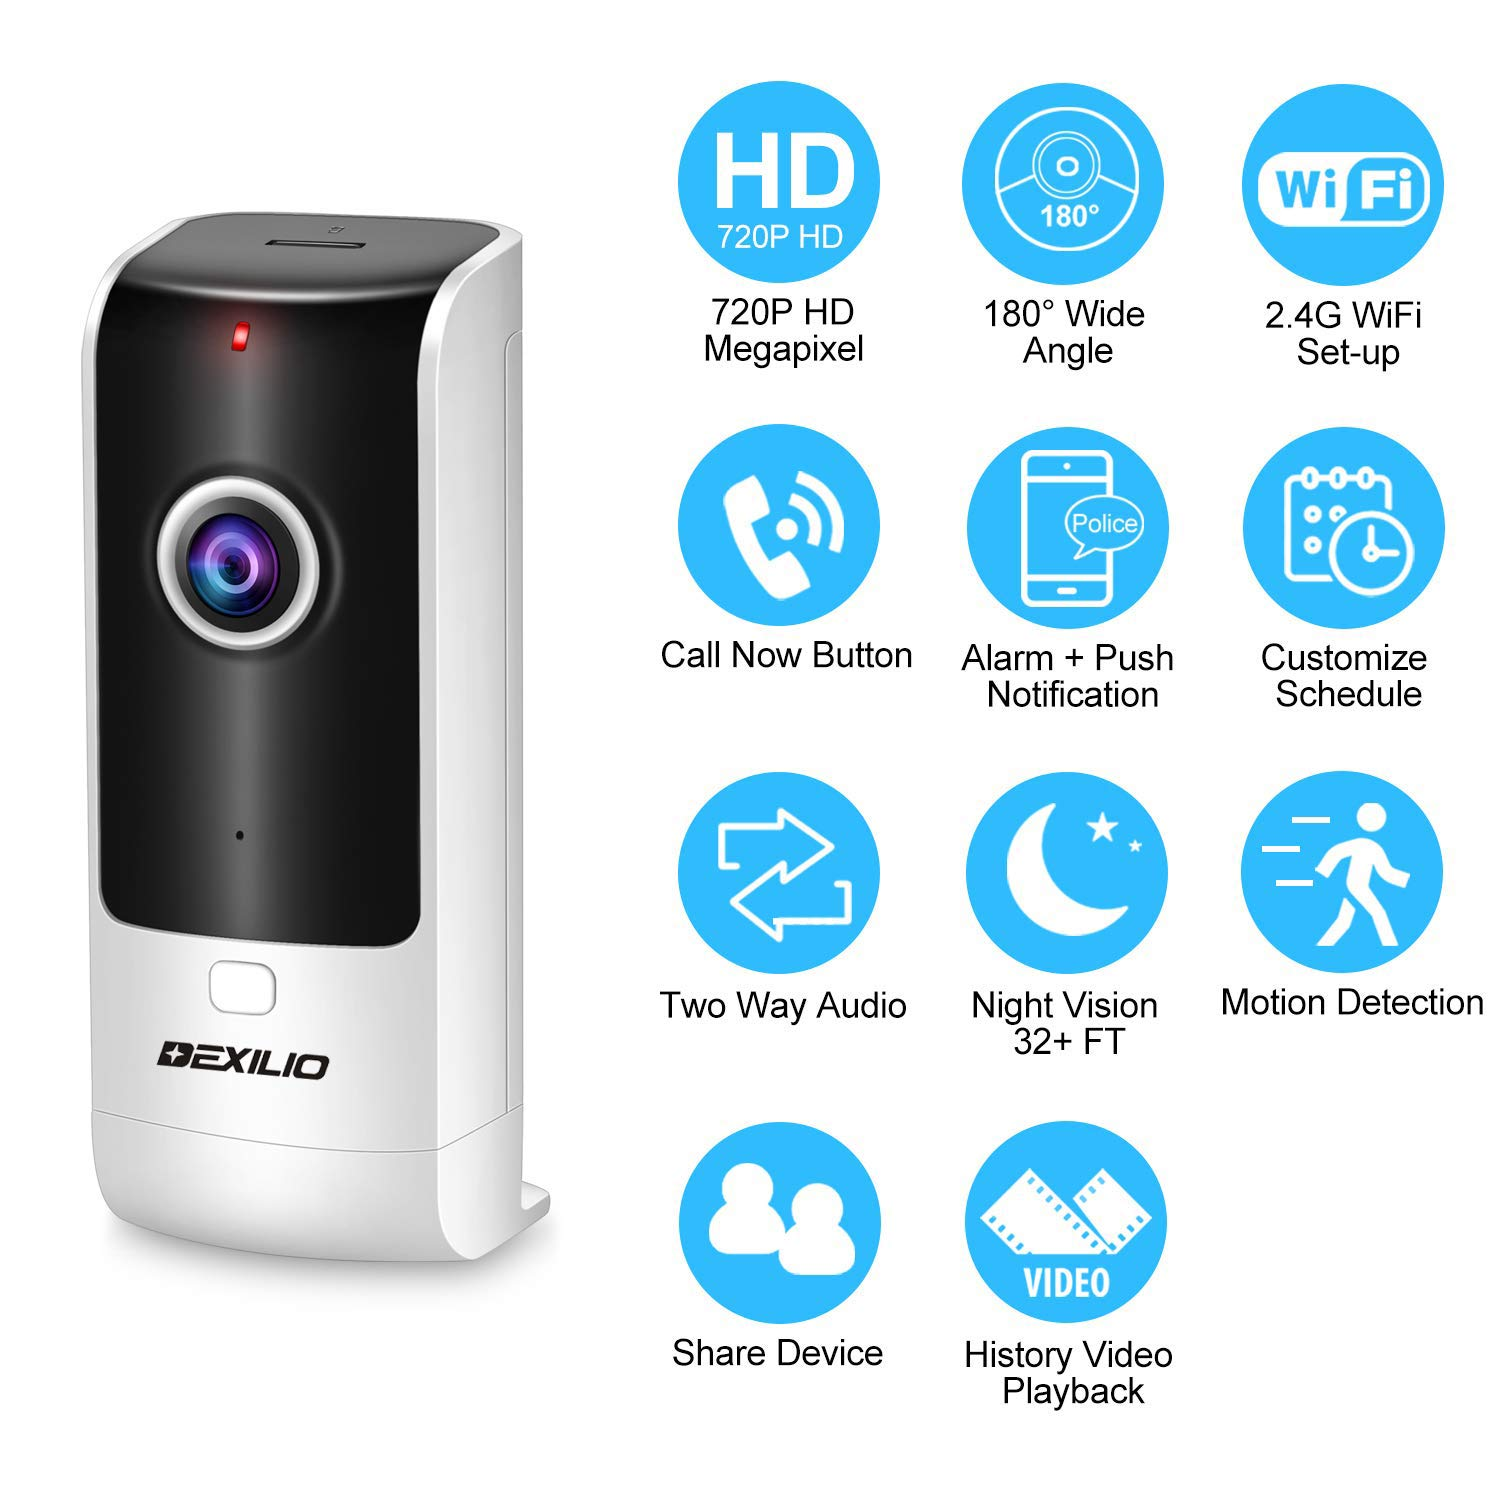 Wireless Security WiFi Camera with Call Button, DEXILIO Home Surveillance Indoor IP Camera for Baby Elder Pet Nanny Monitor, 180 Fisheye Two-Way Audio Motion Detection Cloud Storge,Free 32GB Card